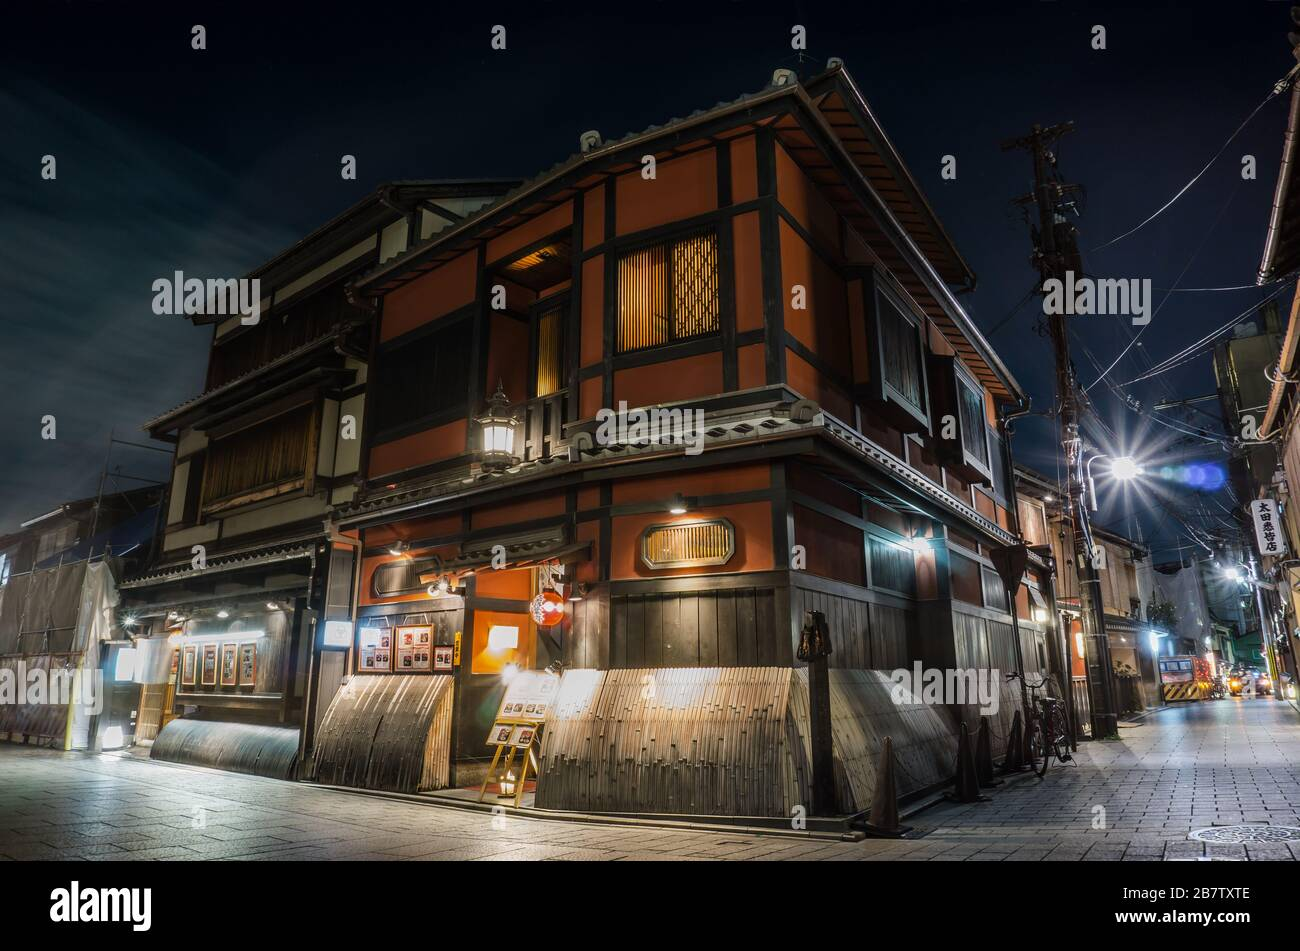 Night View Of An Old Japanese Restaurant In The Gion Area Of Kyoto Japan Stock Photo Alamy